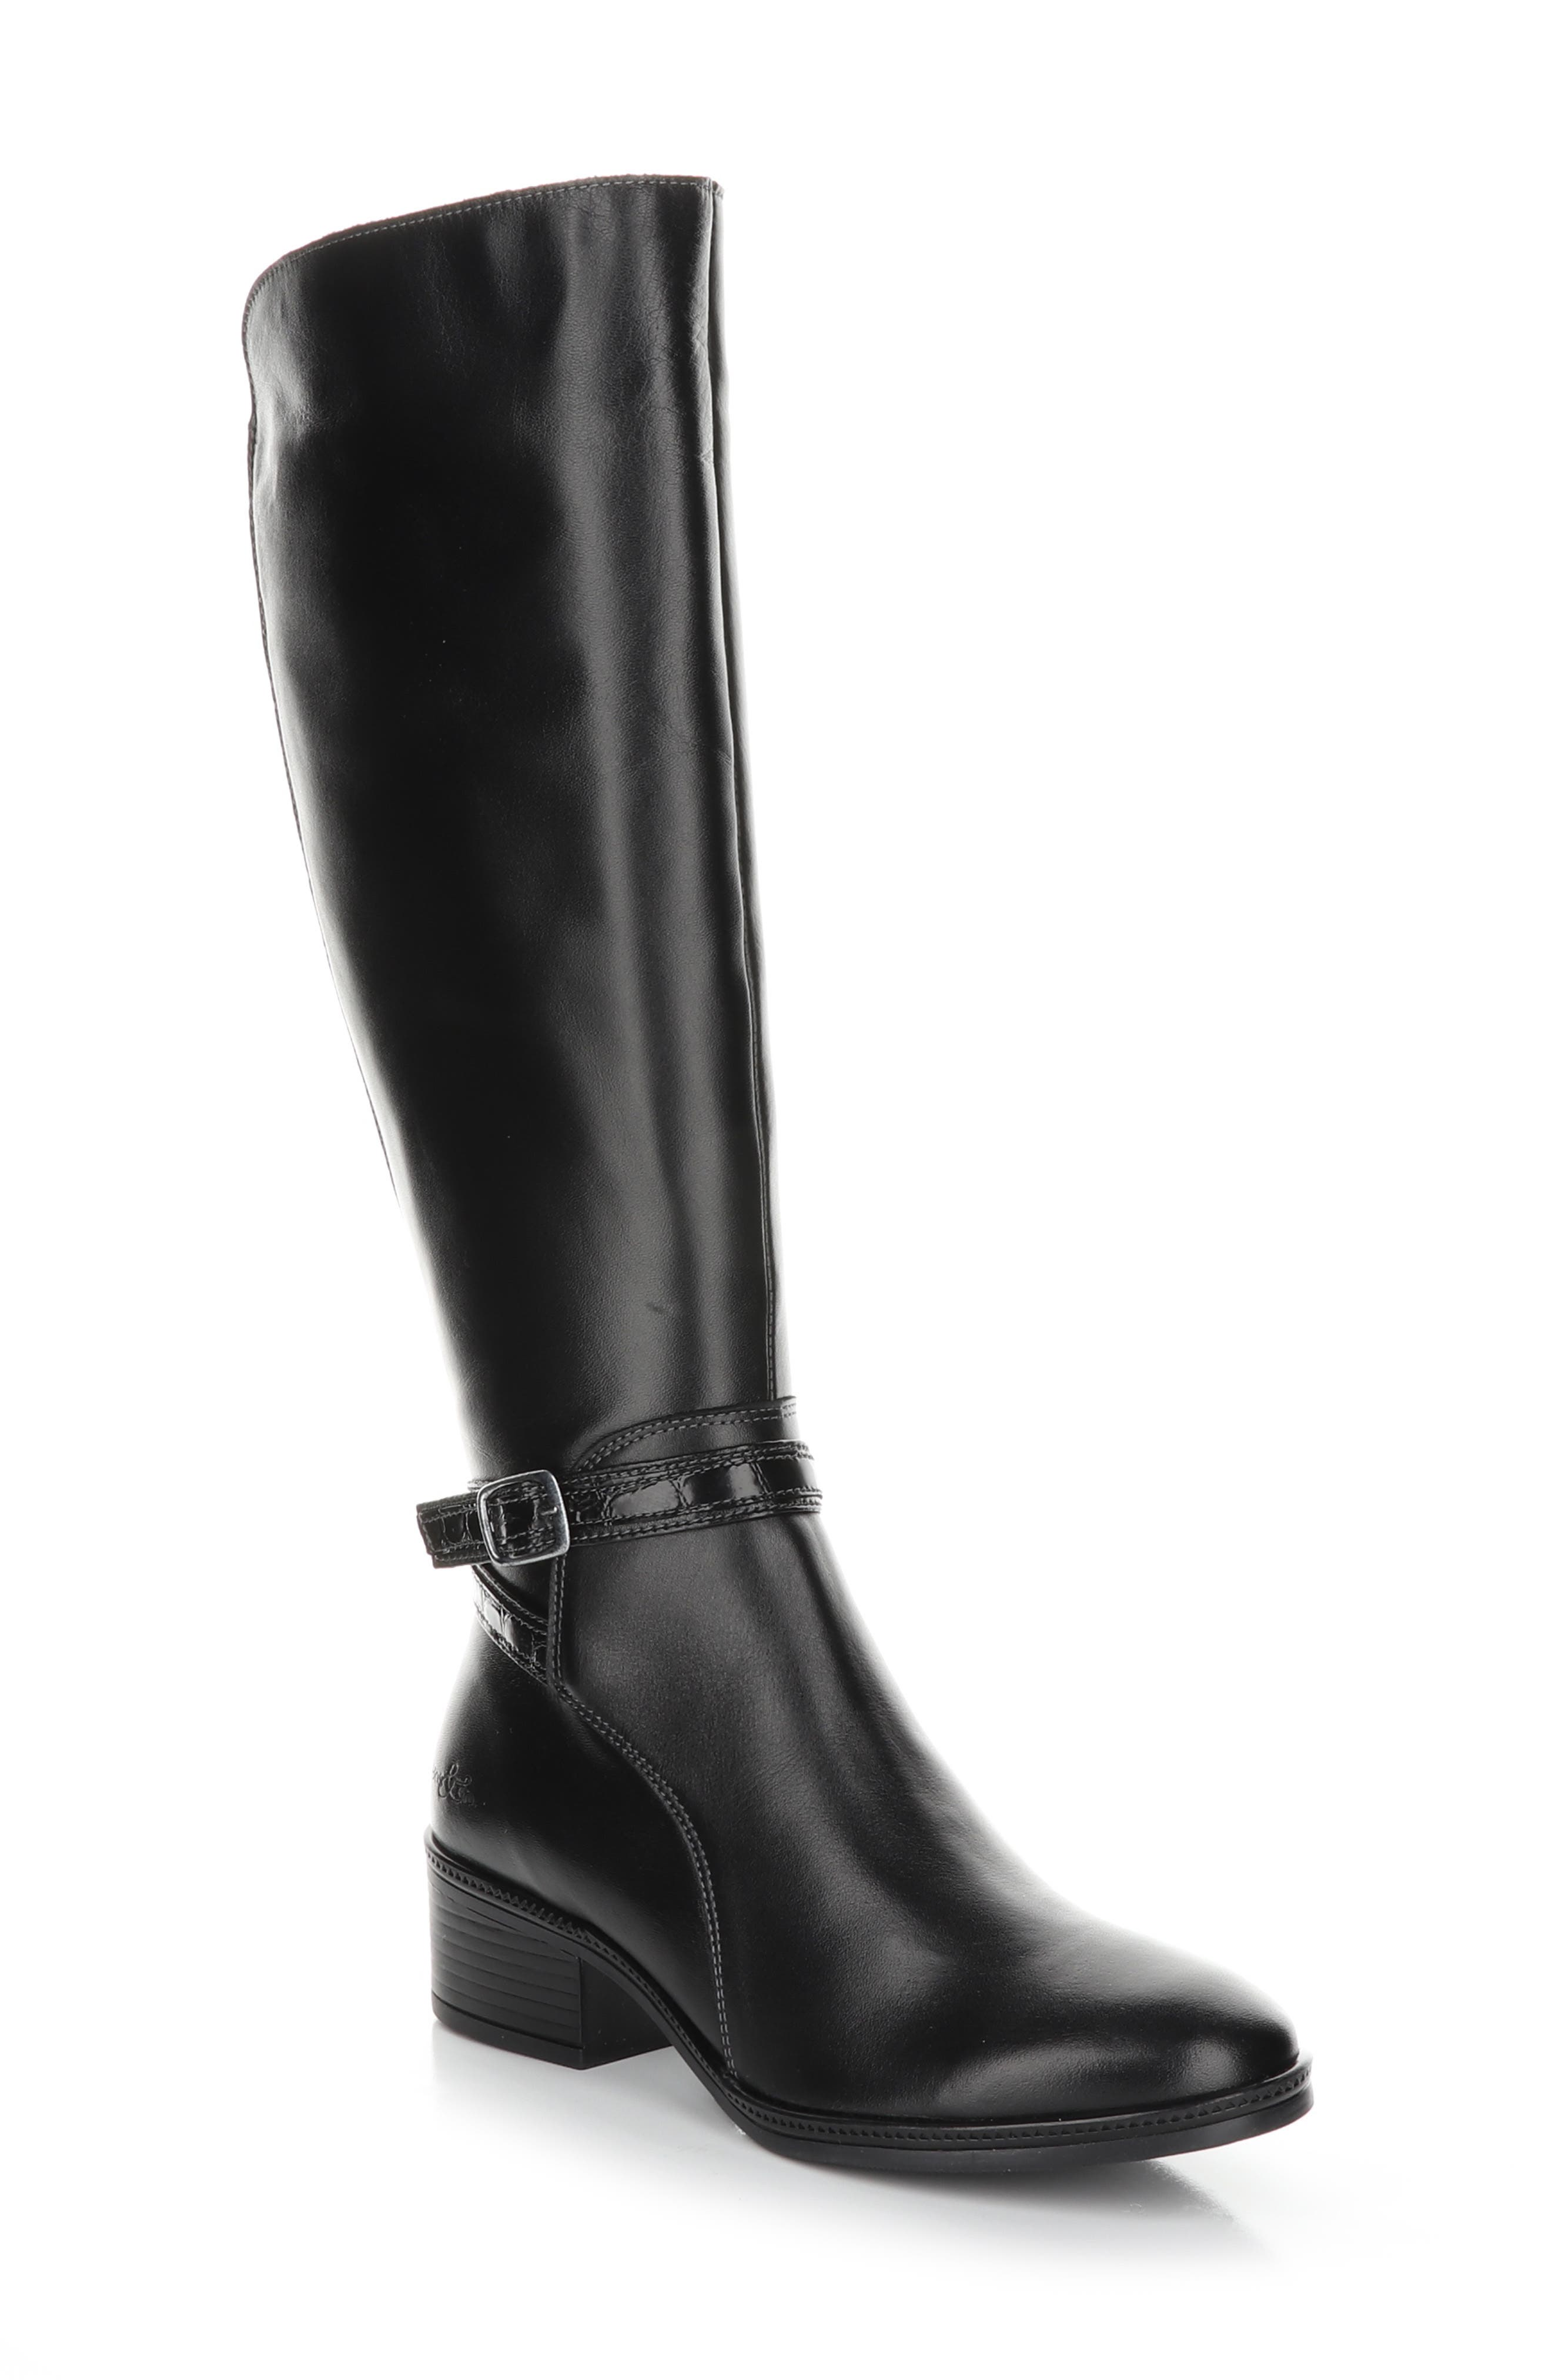 An Aquastop breathable, water-repellent membrane and moisture-wicking lining make this chic tall boot extra comfortable, whatever the forecast. Style Name: Bos. & Co. Jade Waterproof Knee High Boot (Women). Style Number: 6086156. Available in stores.